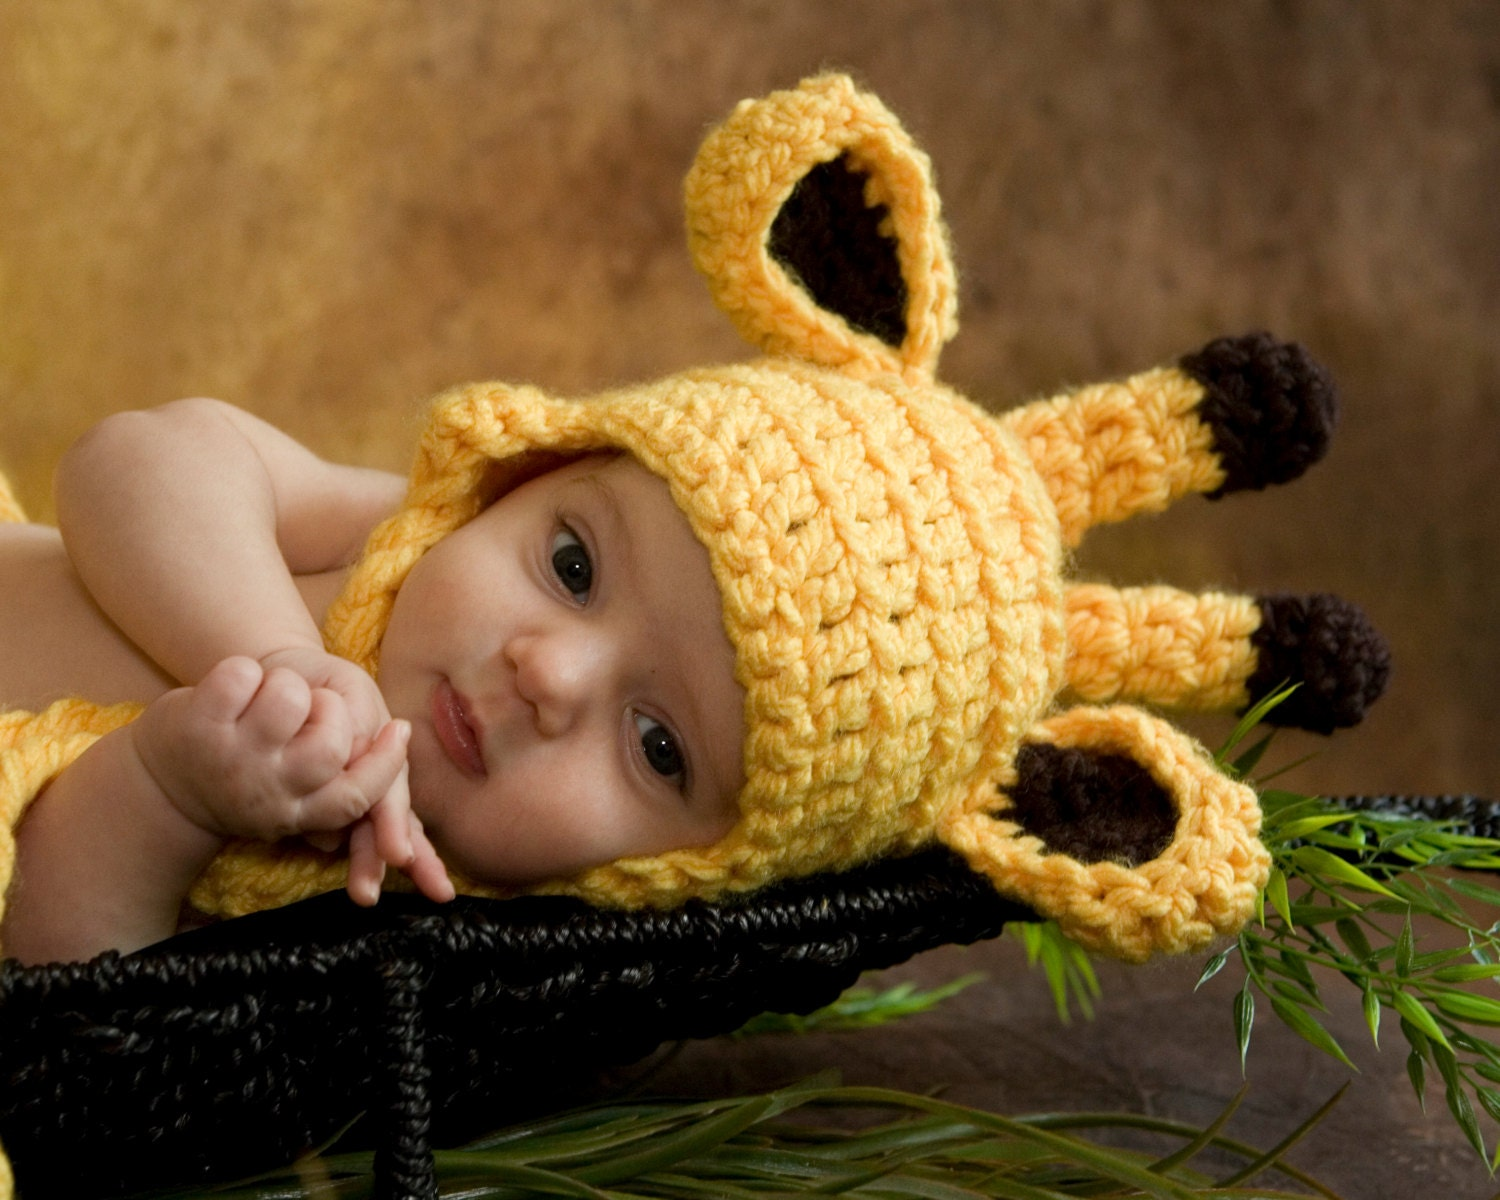 Crochet Hat Pattern Baby Giraffe Beanie Hat : Crochet Pattern Giraffe Hat Baby Crochet Pattern by ...